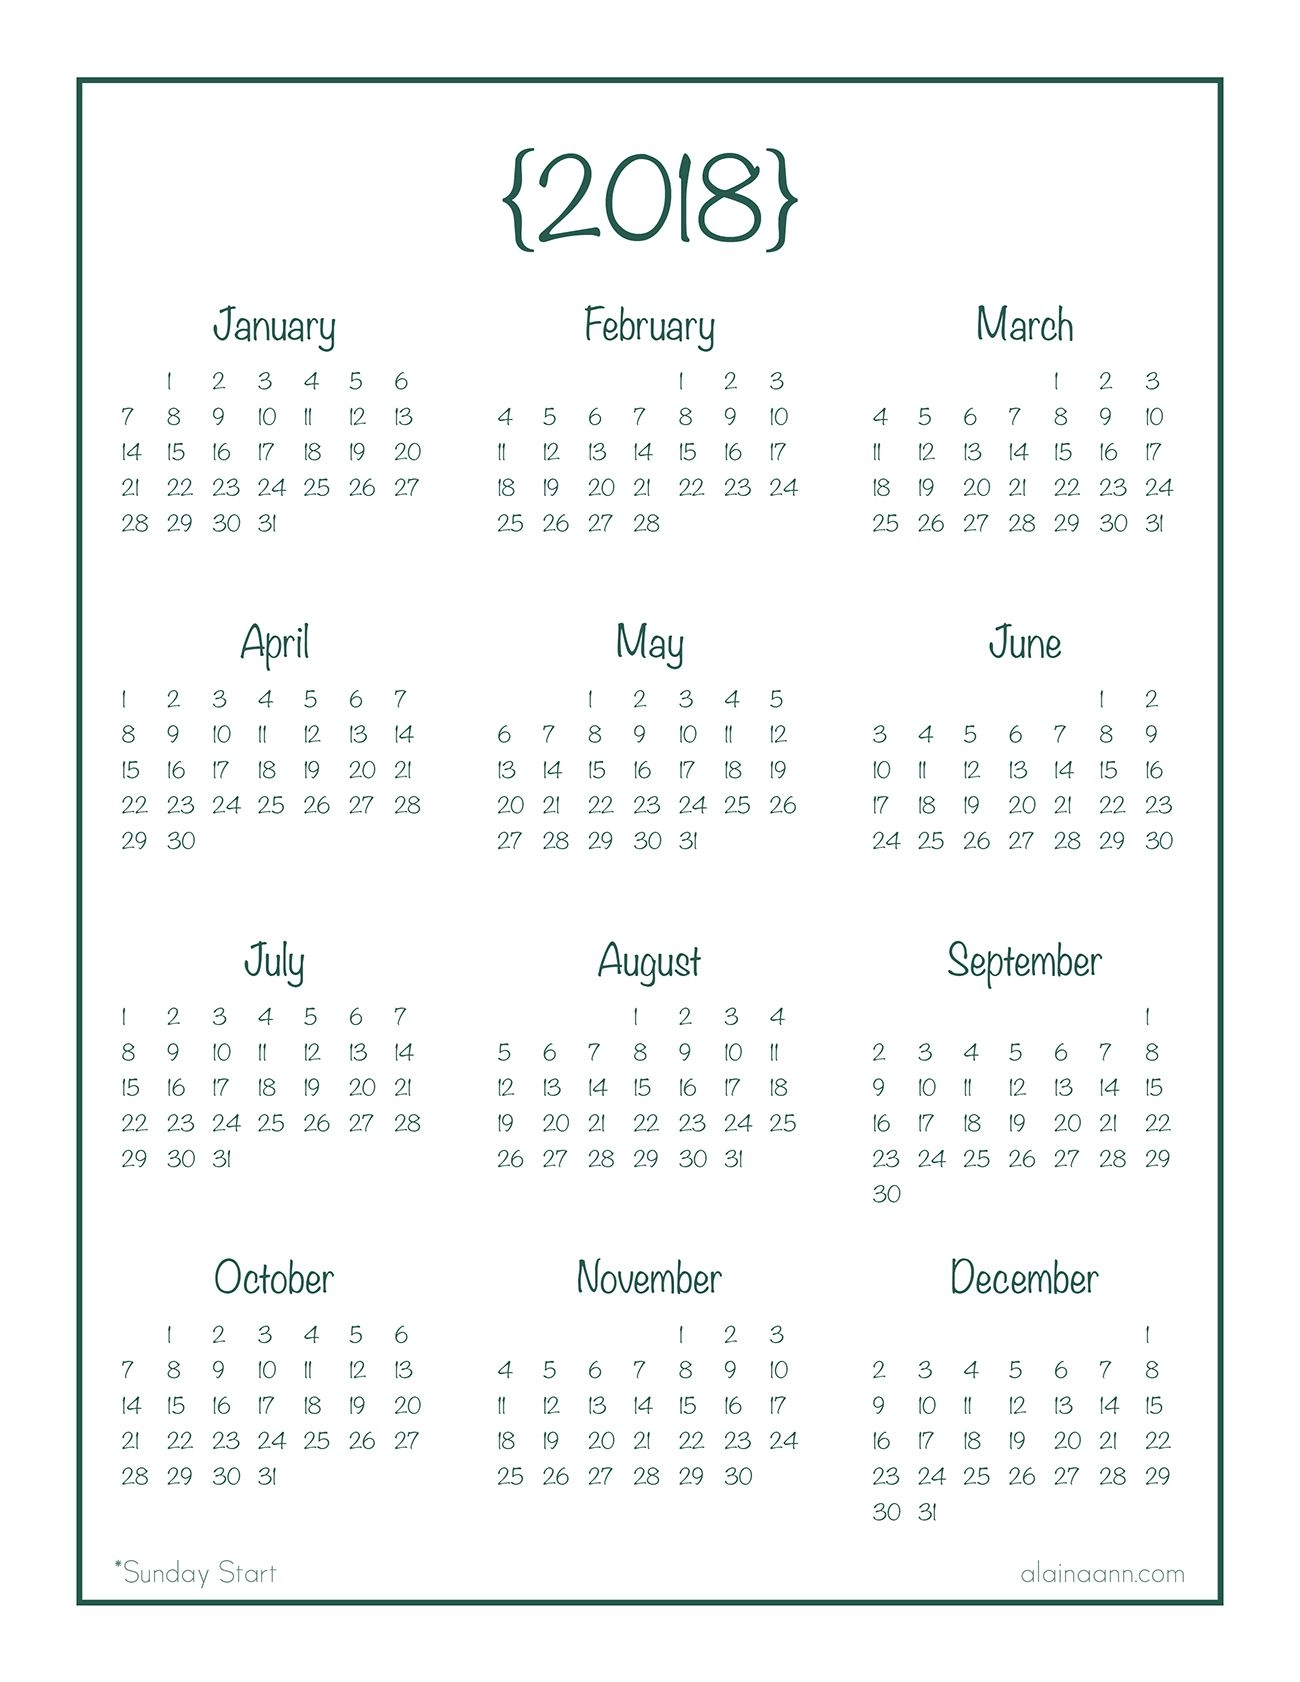 2018 Year At A Glance Calendar Free Printable Plannerjournal3abry